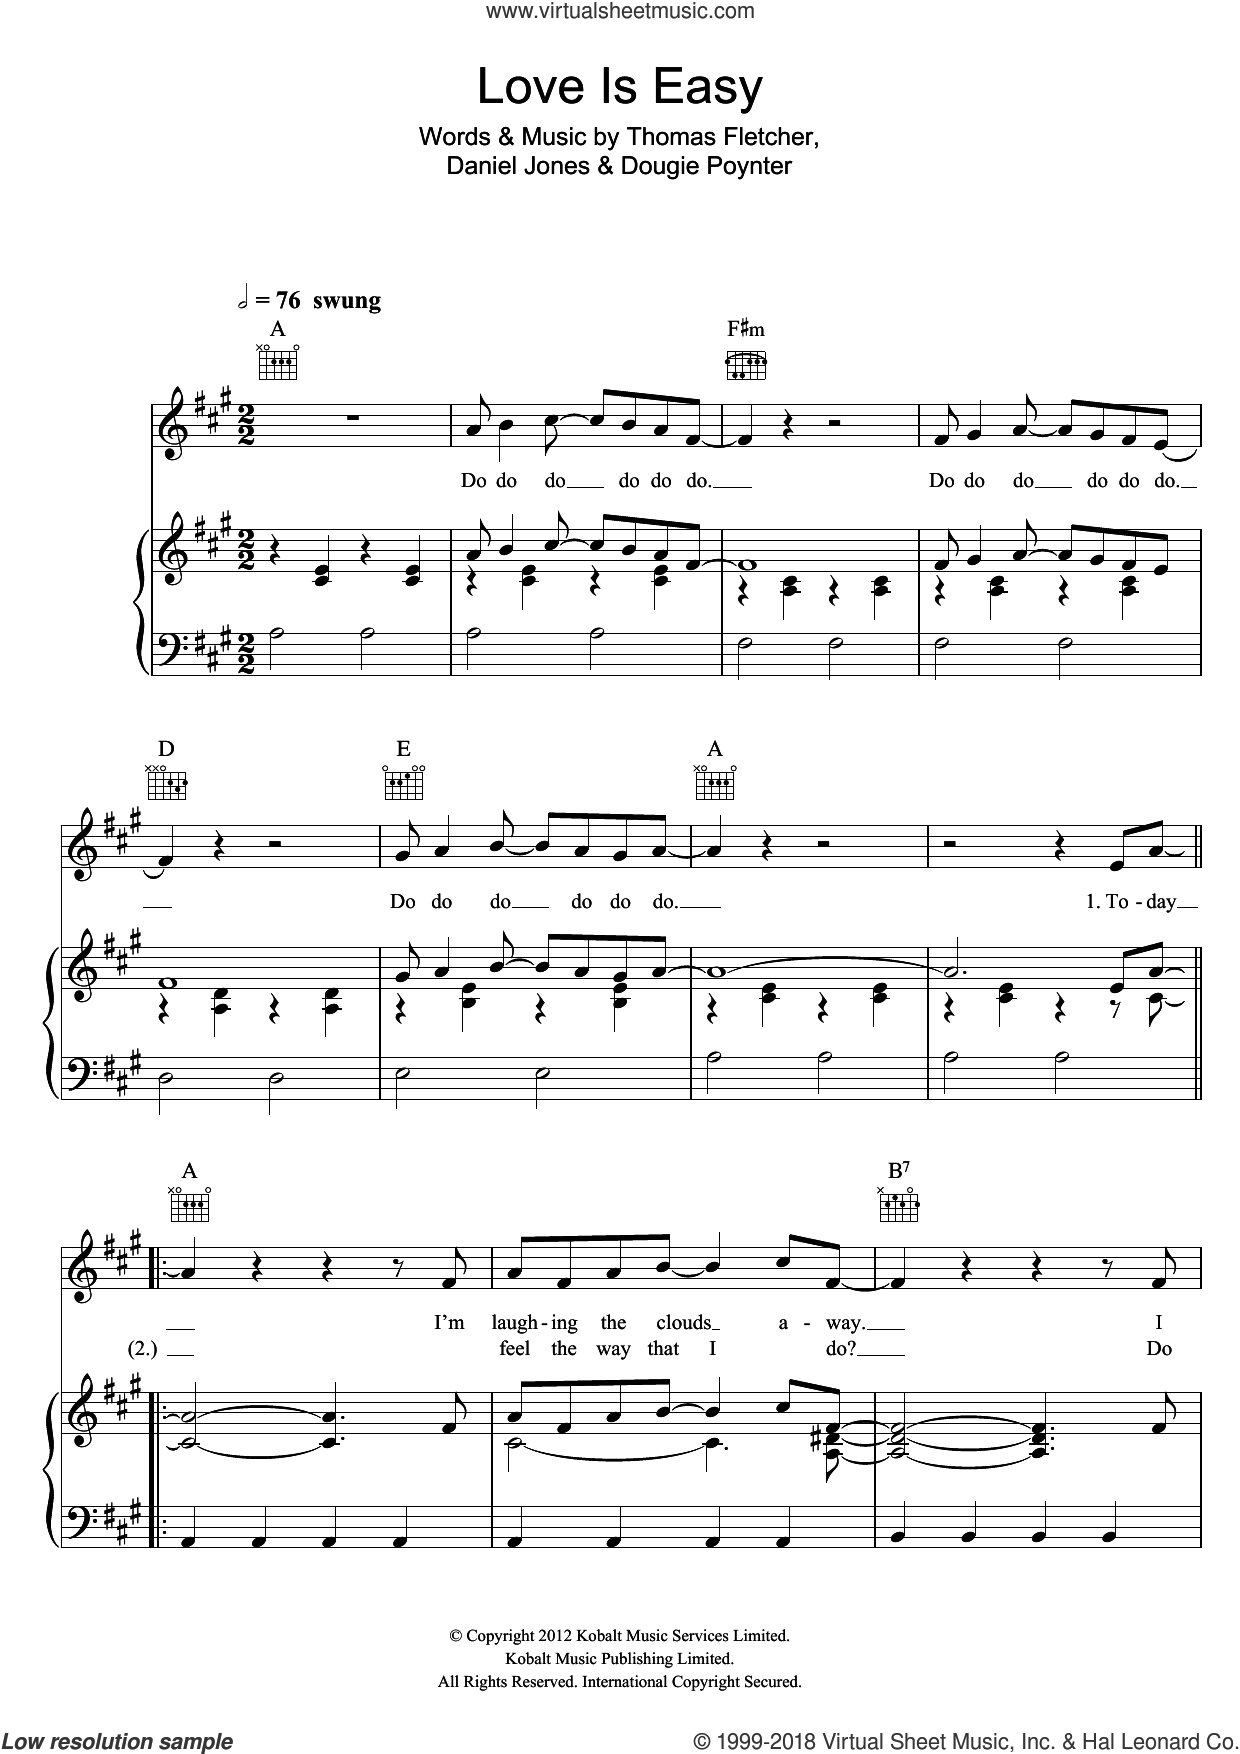 Love Is Easy sheet music for voice, piano or guitar by McFly, Danny Jones, Dougie Poynter and Thomas Fletcher, intermediate skill level